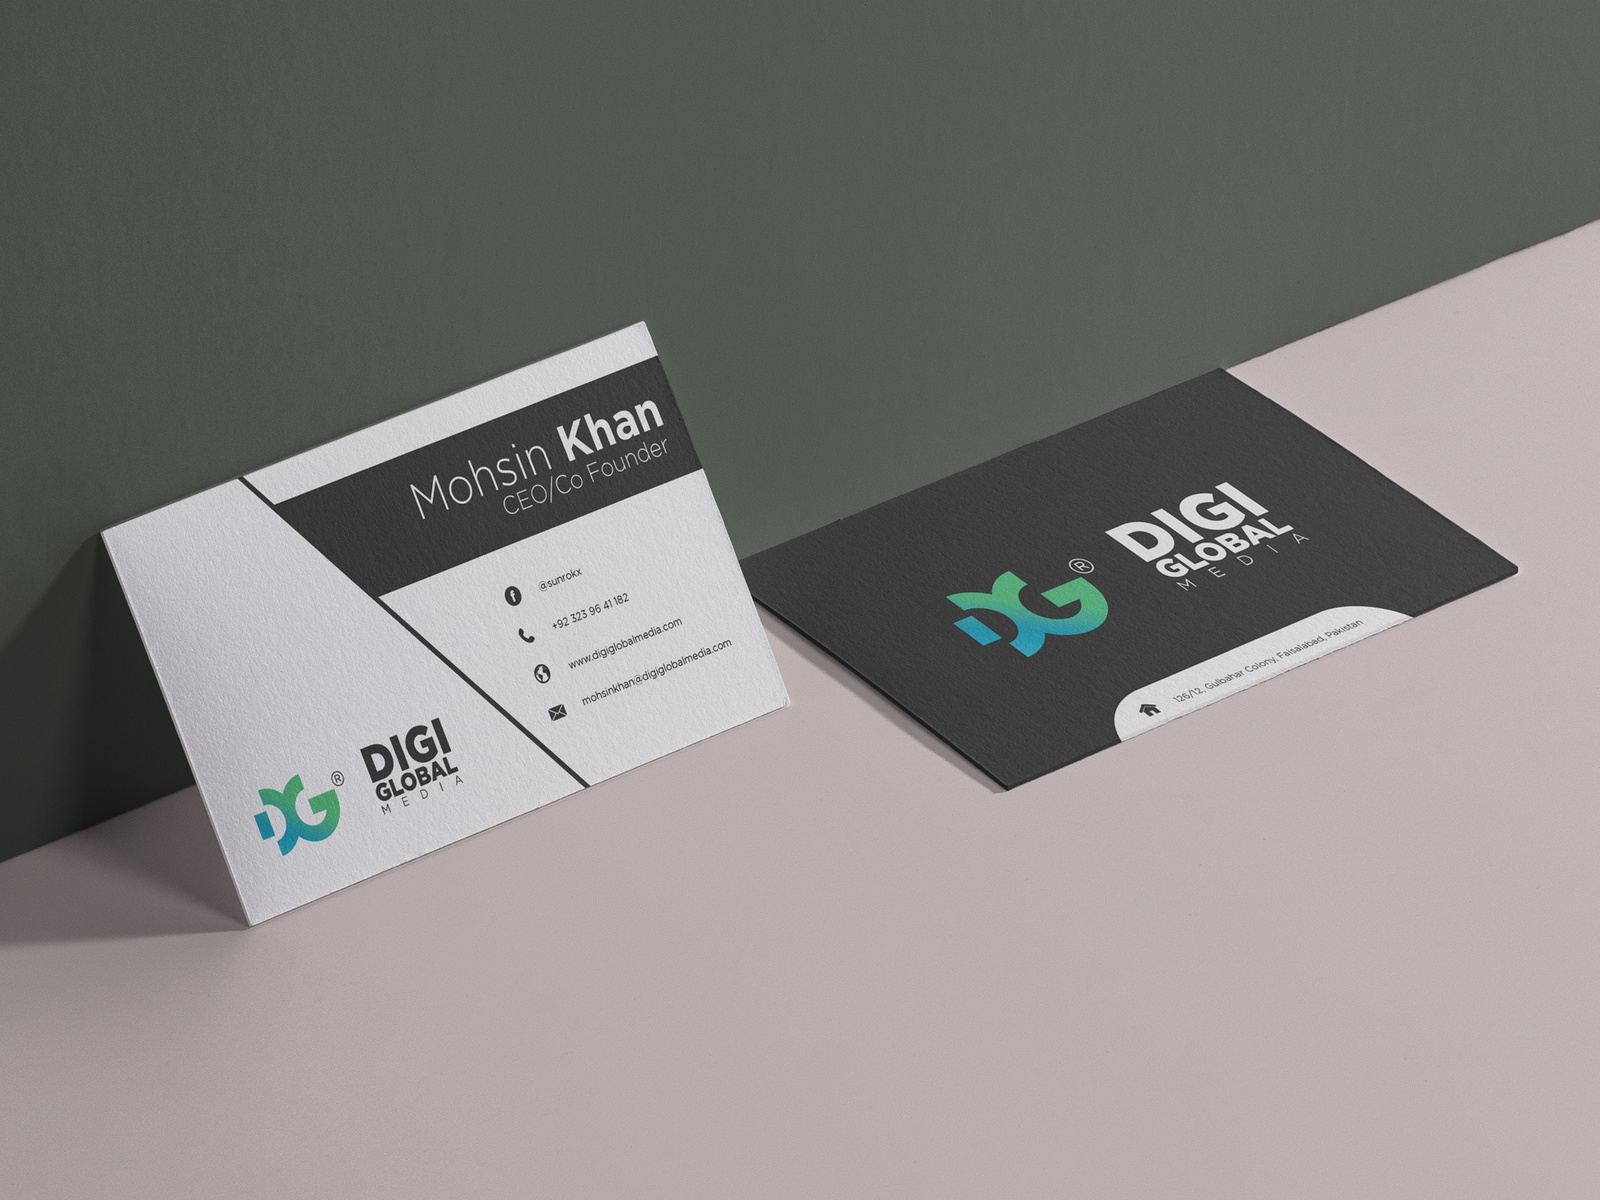 Business card of digi global media by tayyab tanveer dribbble this is 2nd business card design for that i made for digi global media this one is my favorite design very simple unique professional and elegant colourmoves